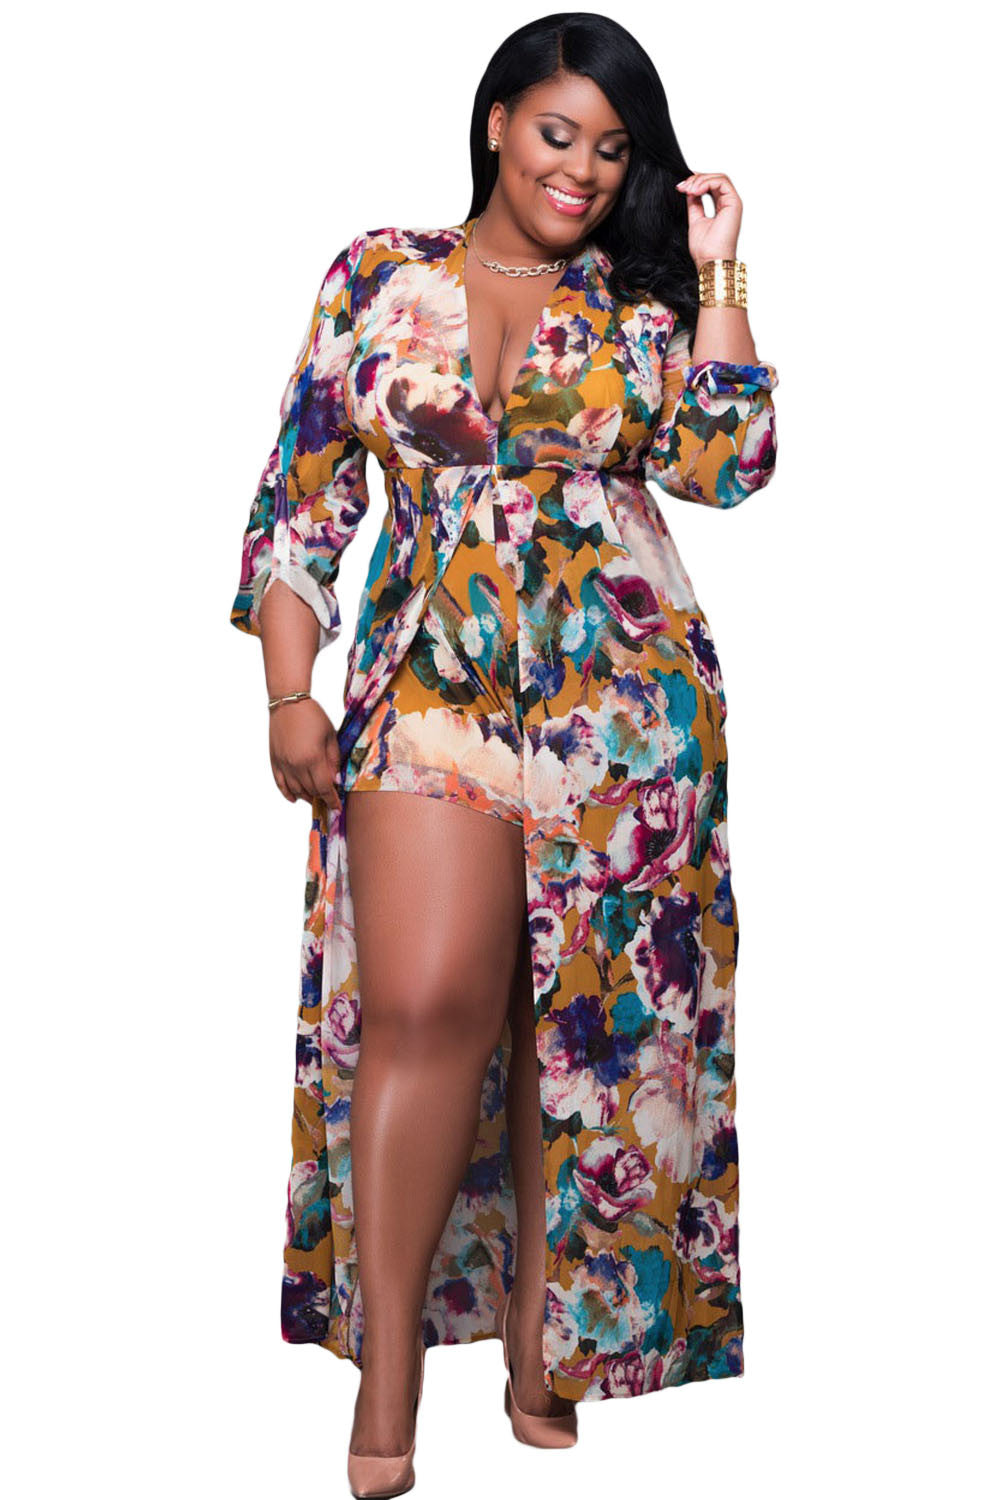 PLUS SIZE DIVA Long Sleeved Floral Romper Maxi Dress – IBL Fashion